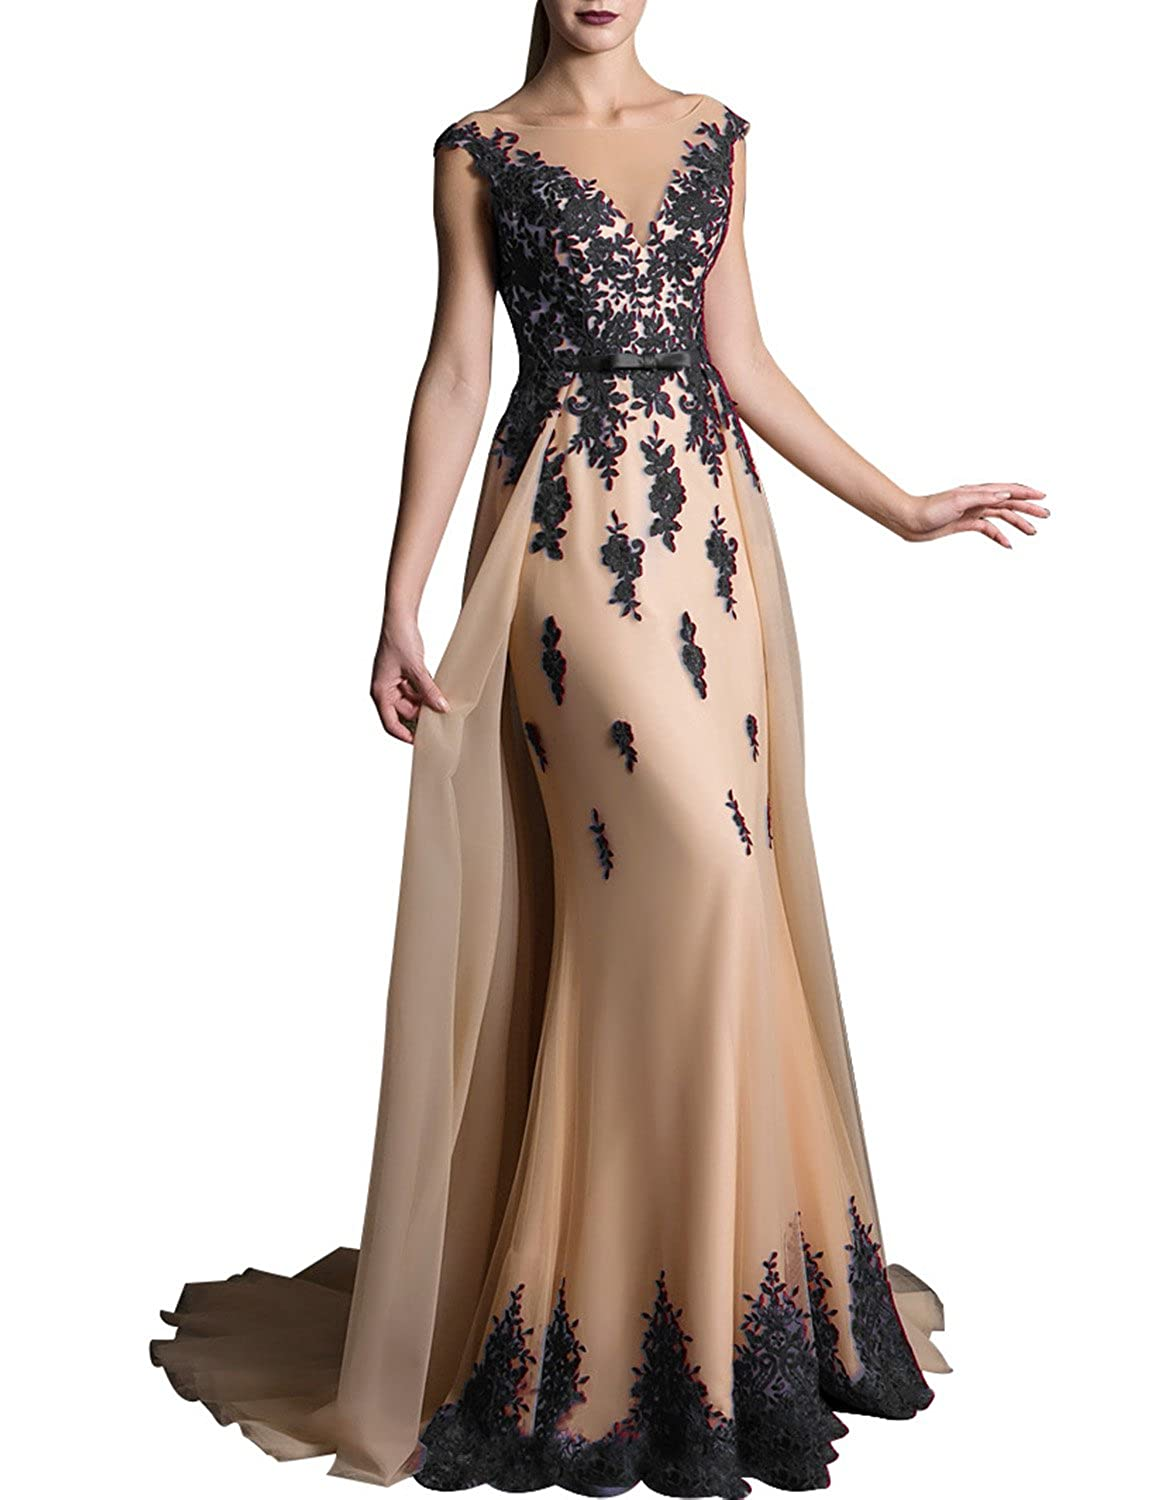 5261c3419aae1 2019 Lace Prom Dress for Girls V Neck Evening Party Gown Sweep Train Formal  EV429